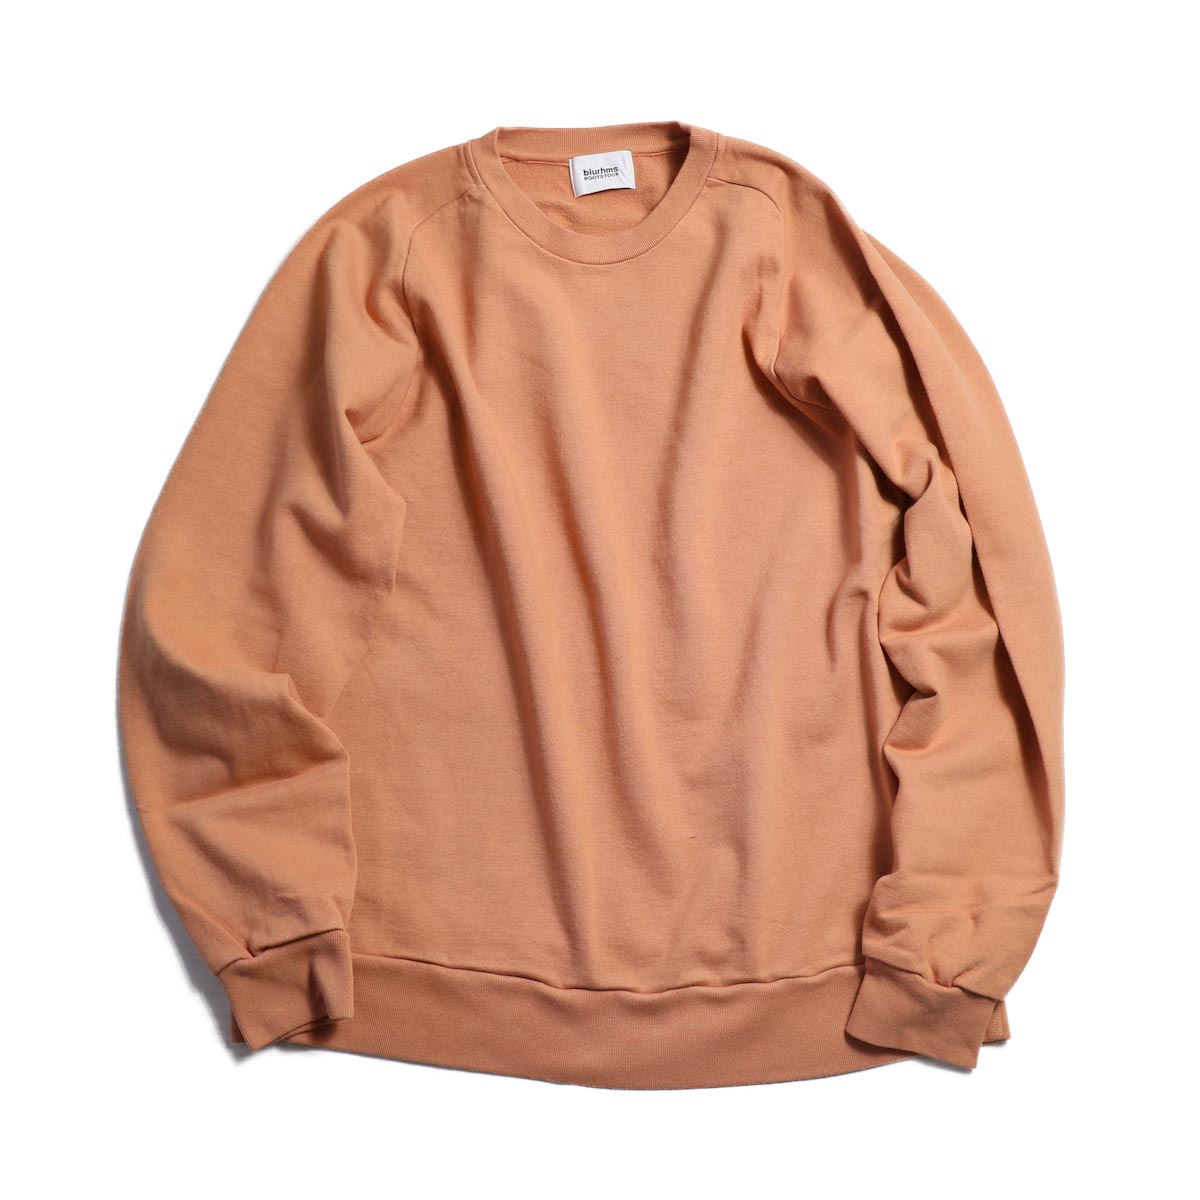 blurhms / Freedom Sleeve Sweat Shirt - Apricot